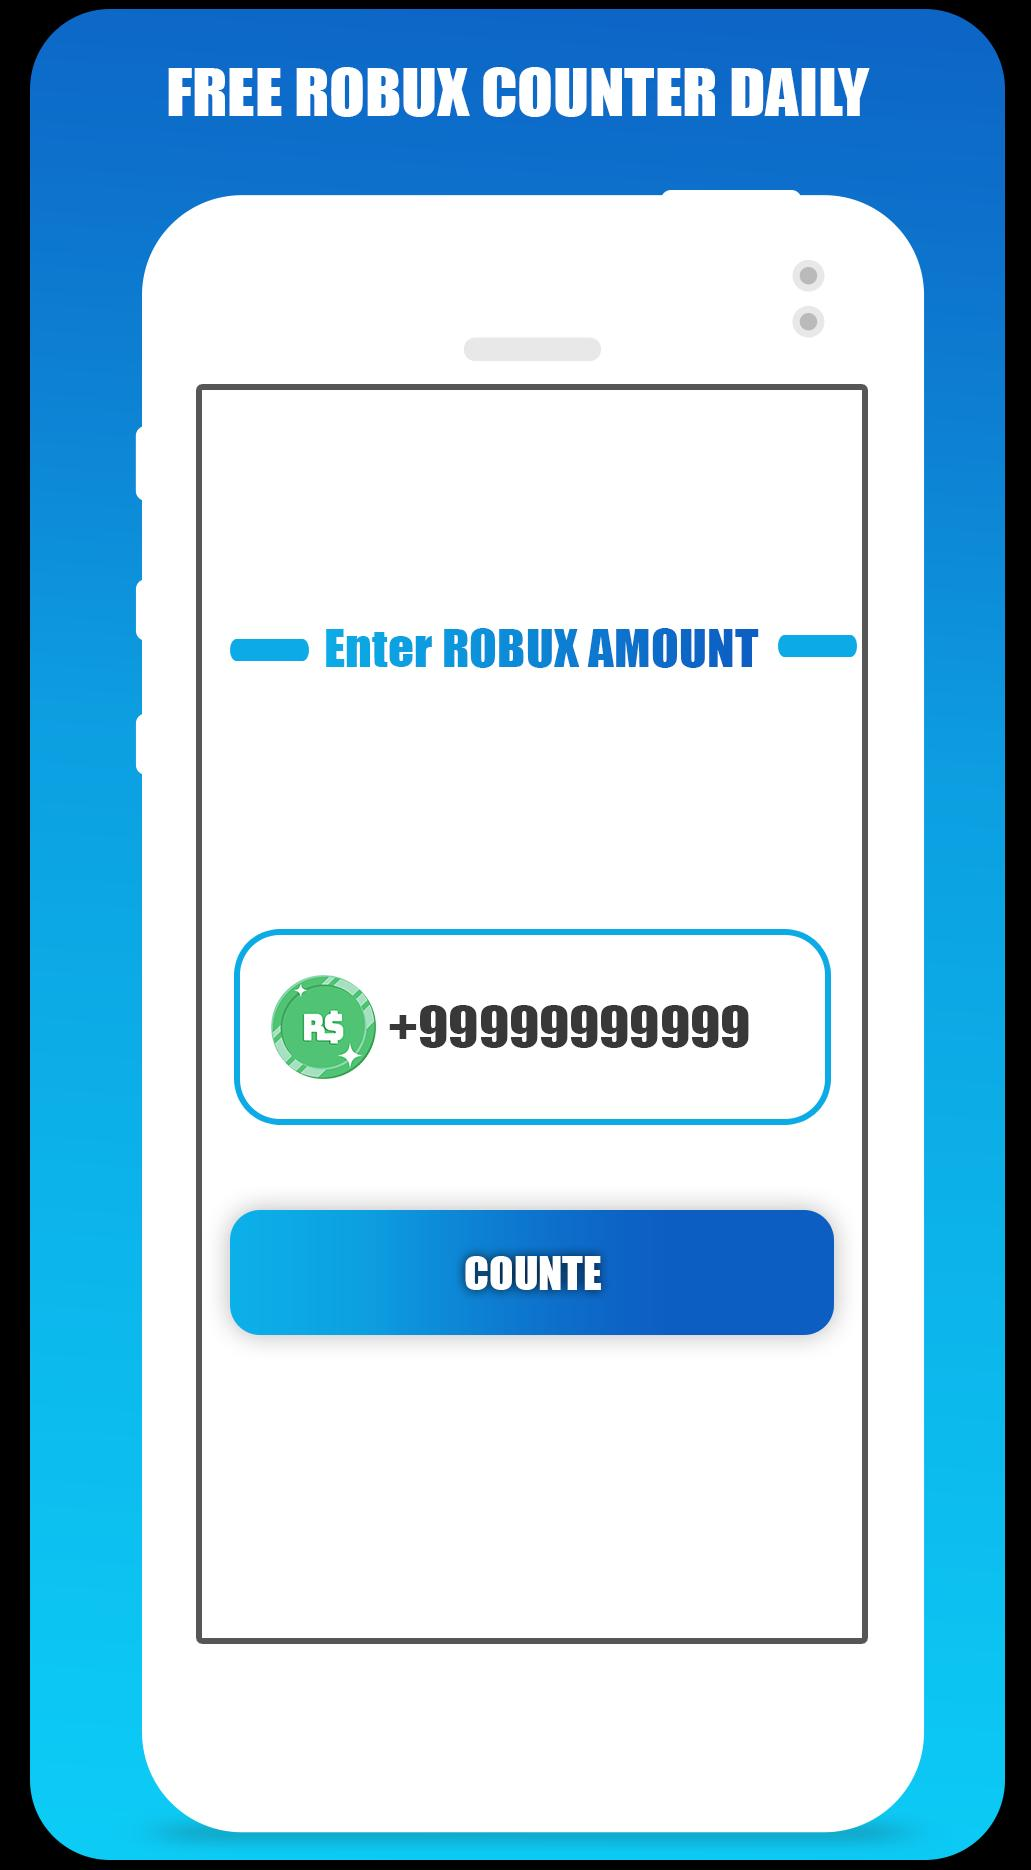 How To Make A Roblox Group For Free 2019 Free Robux Just - Free Robux Counter For Android Apk Download